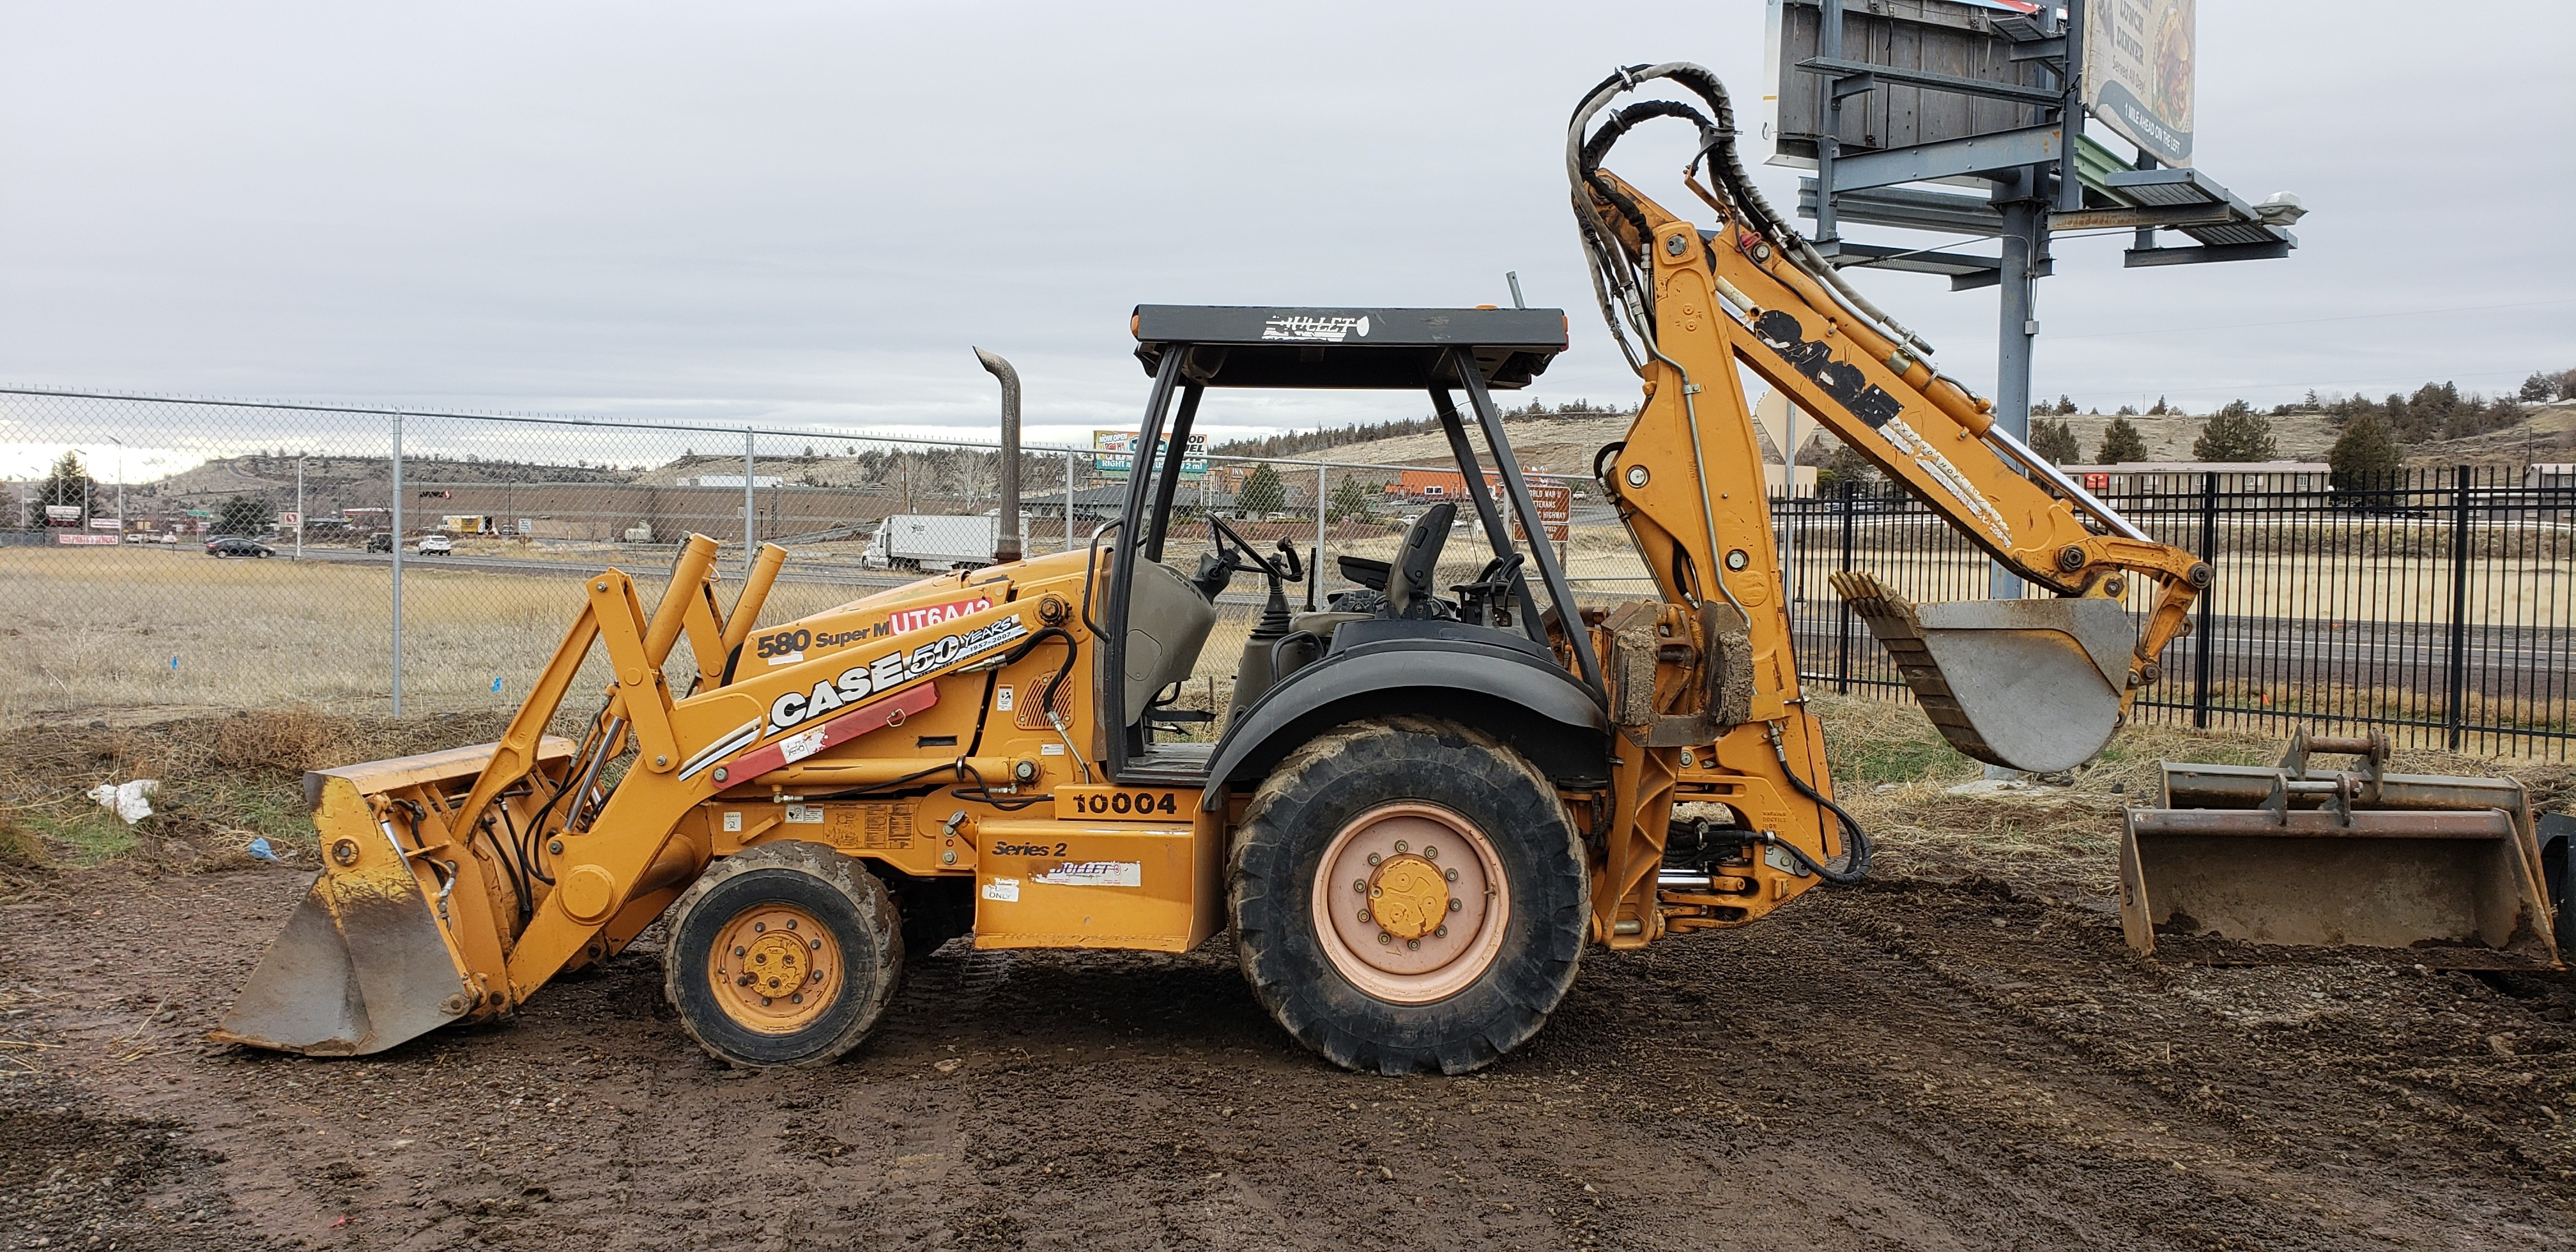 Used 2007 Case Construction 580 Super M Series 2 in Madras, OR